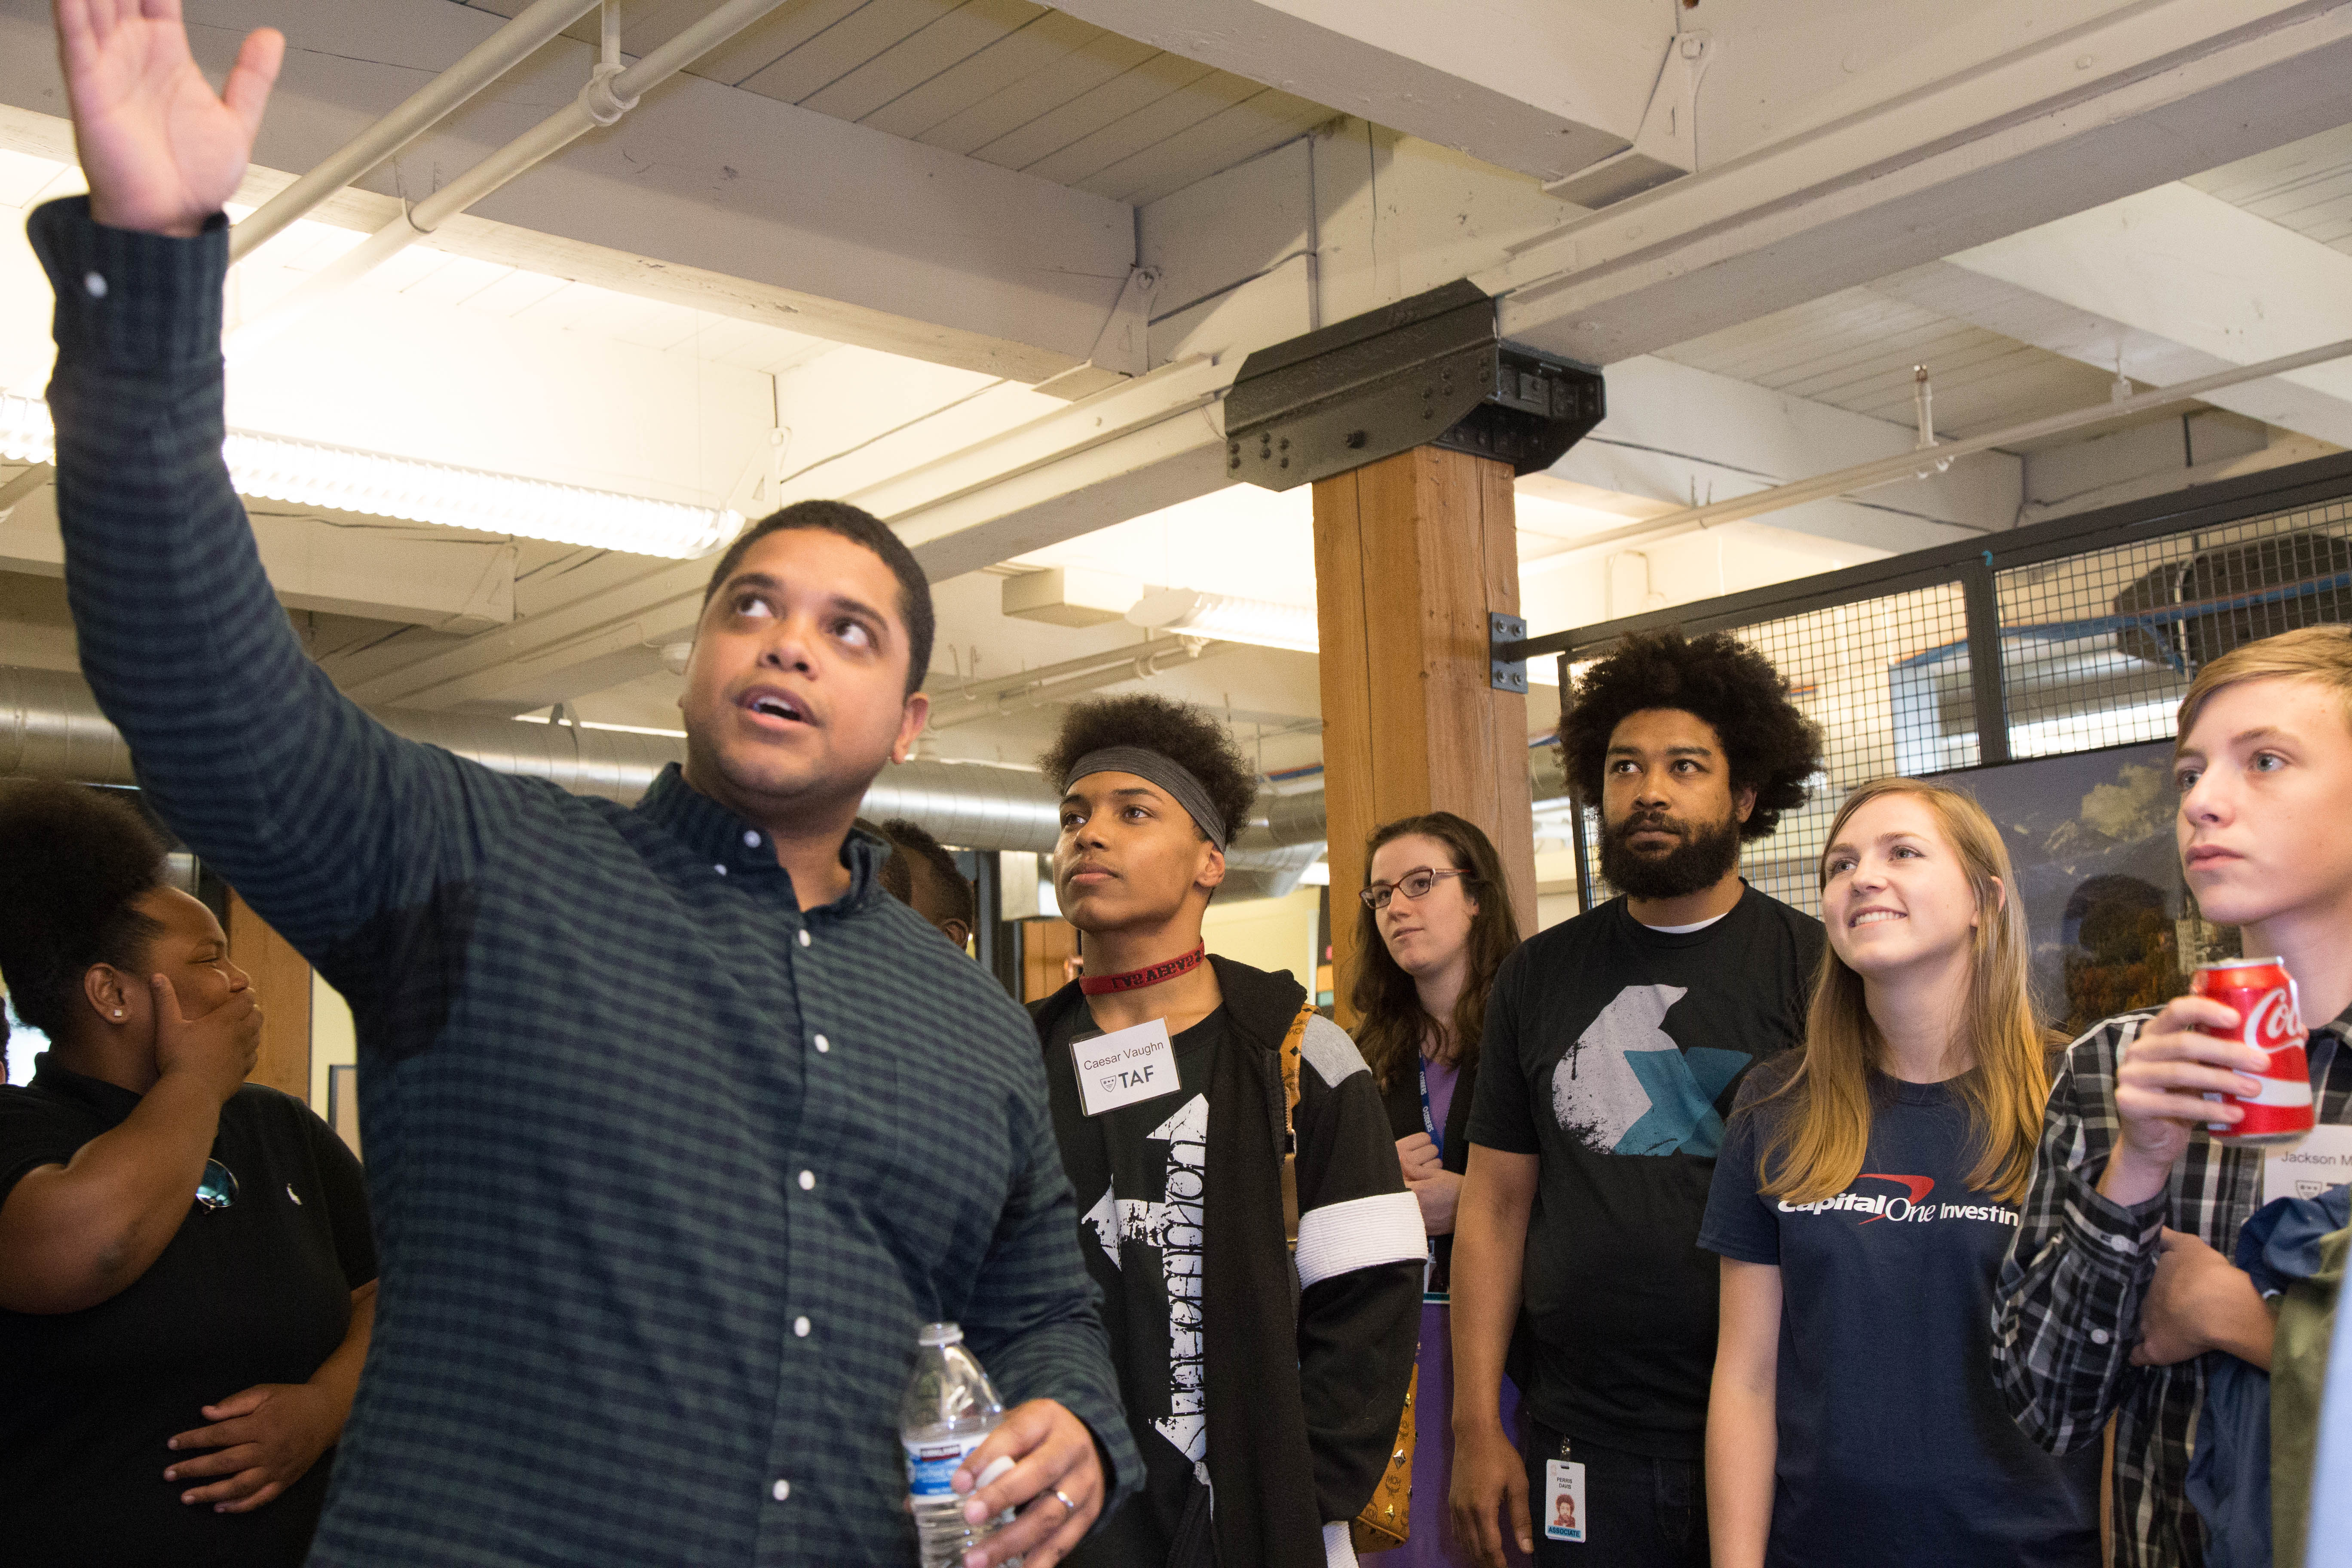 Shortly after arriving at Capital One's downtown Seattle offices, the TAF students were led on a workspace tour by local associates including Mike Bailey (foreground), Natalie Griffin (fourth from right), Perris Davis (third from right) and Alison Wyllie (second from right.)